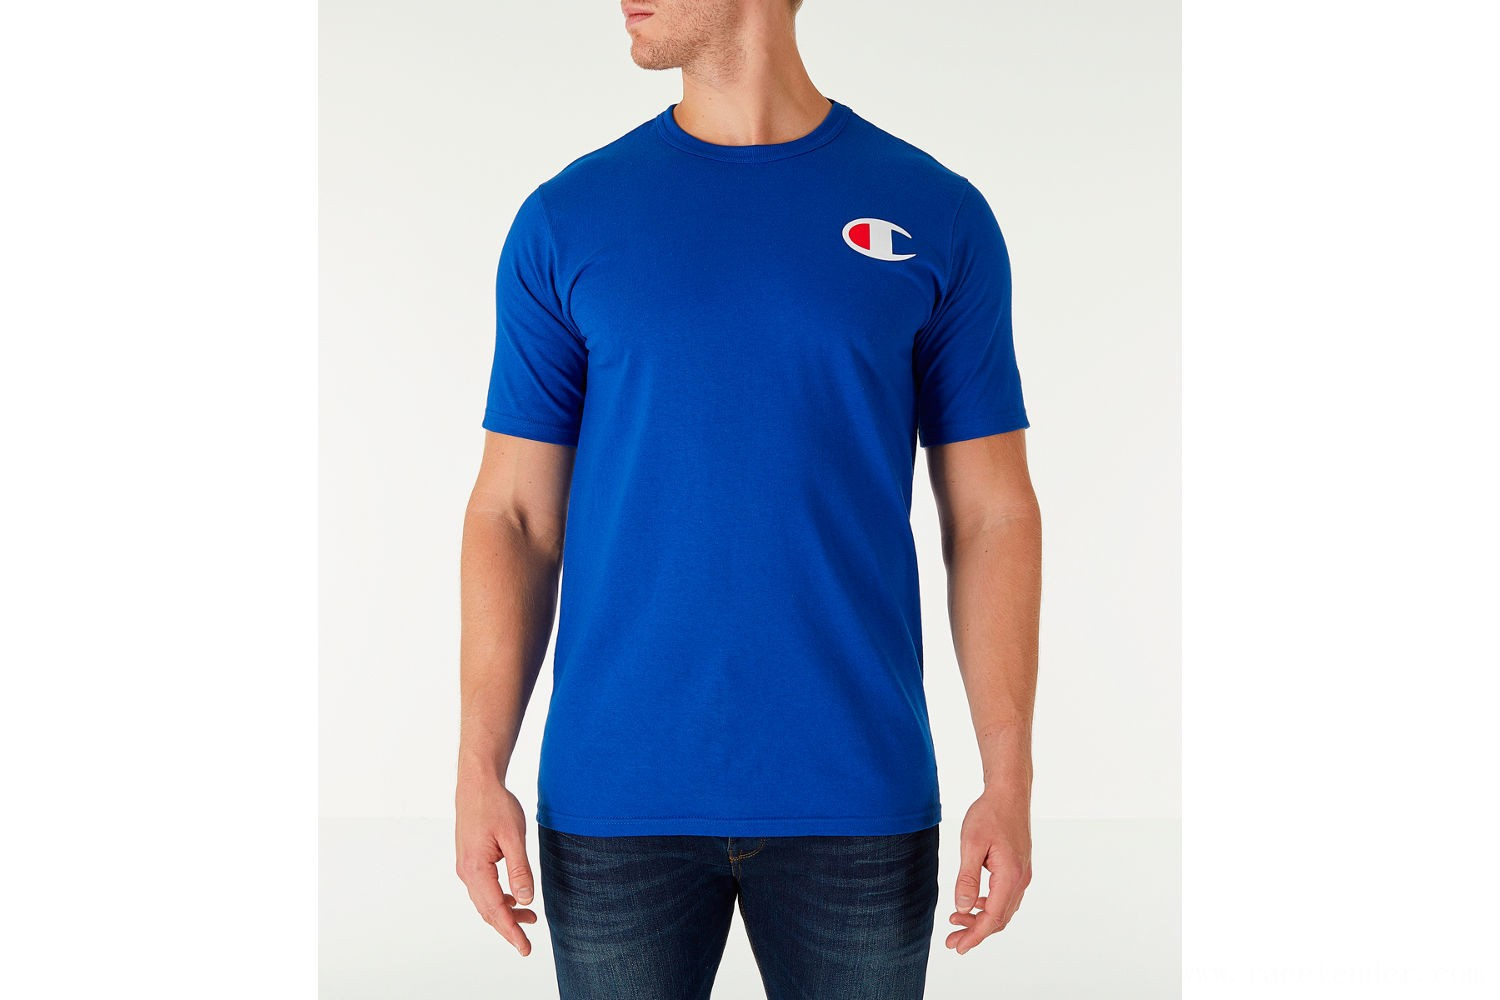 Champion Men's Life C Logo T-Shirt - Surf The Web